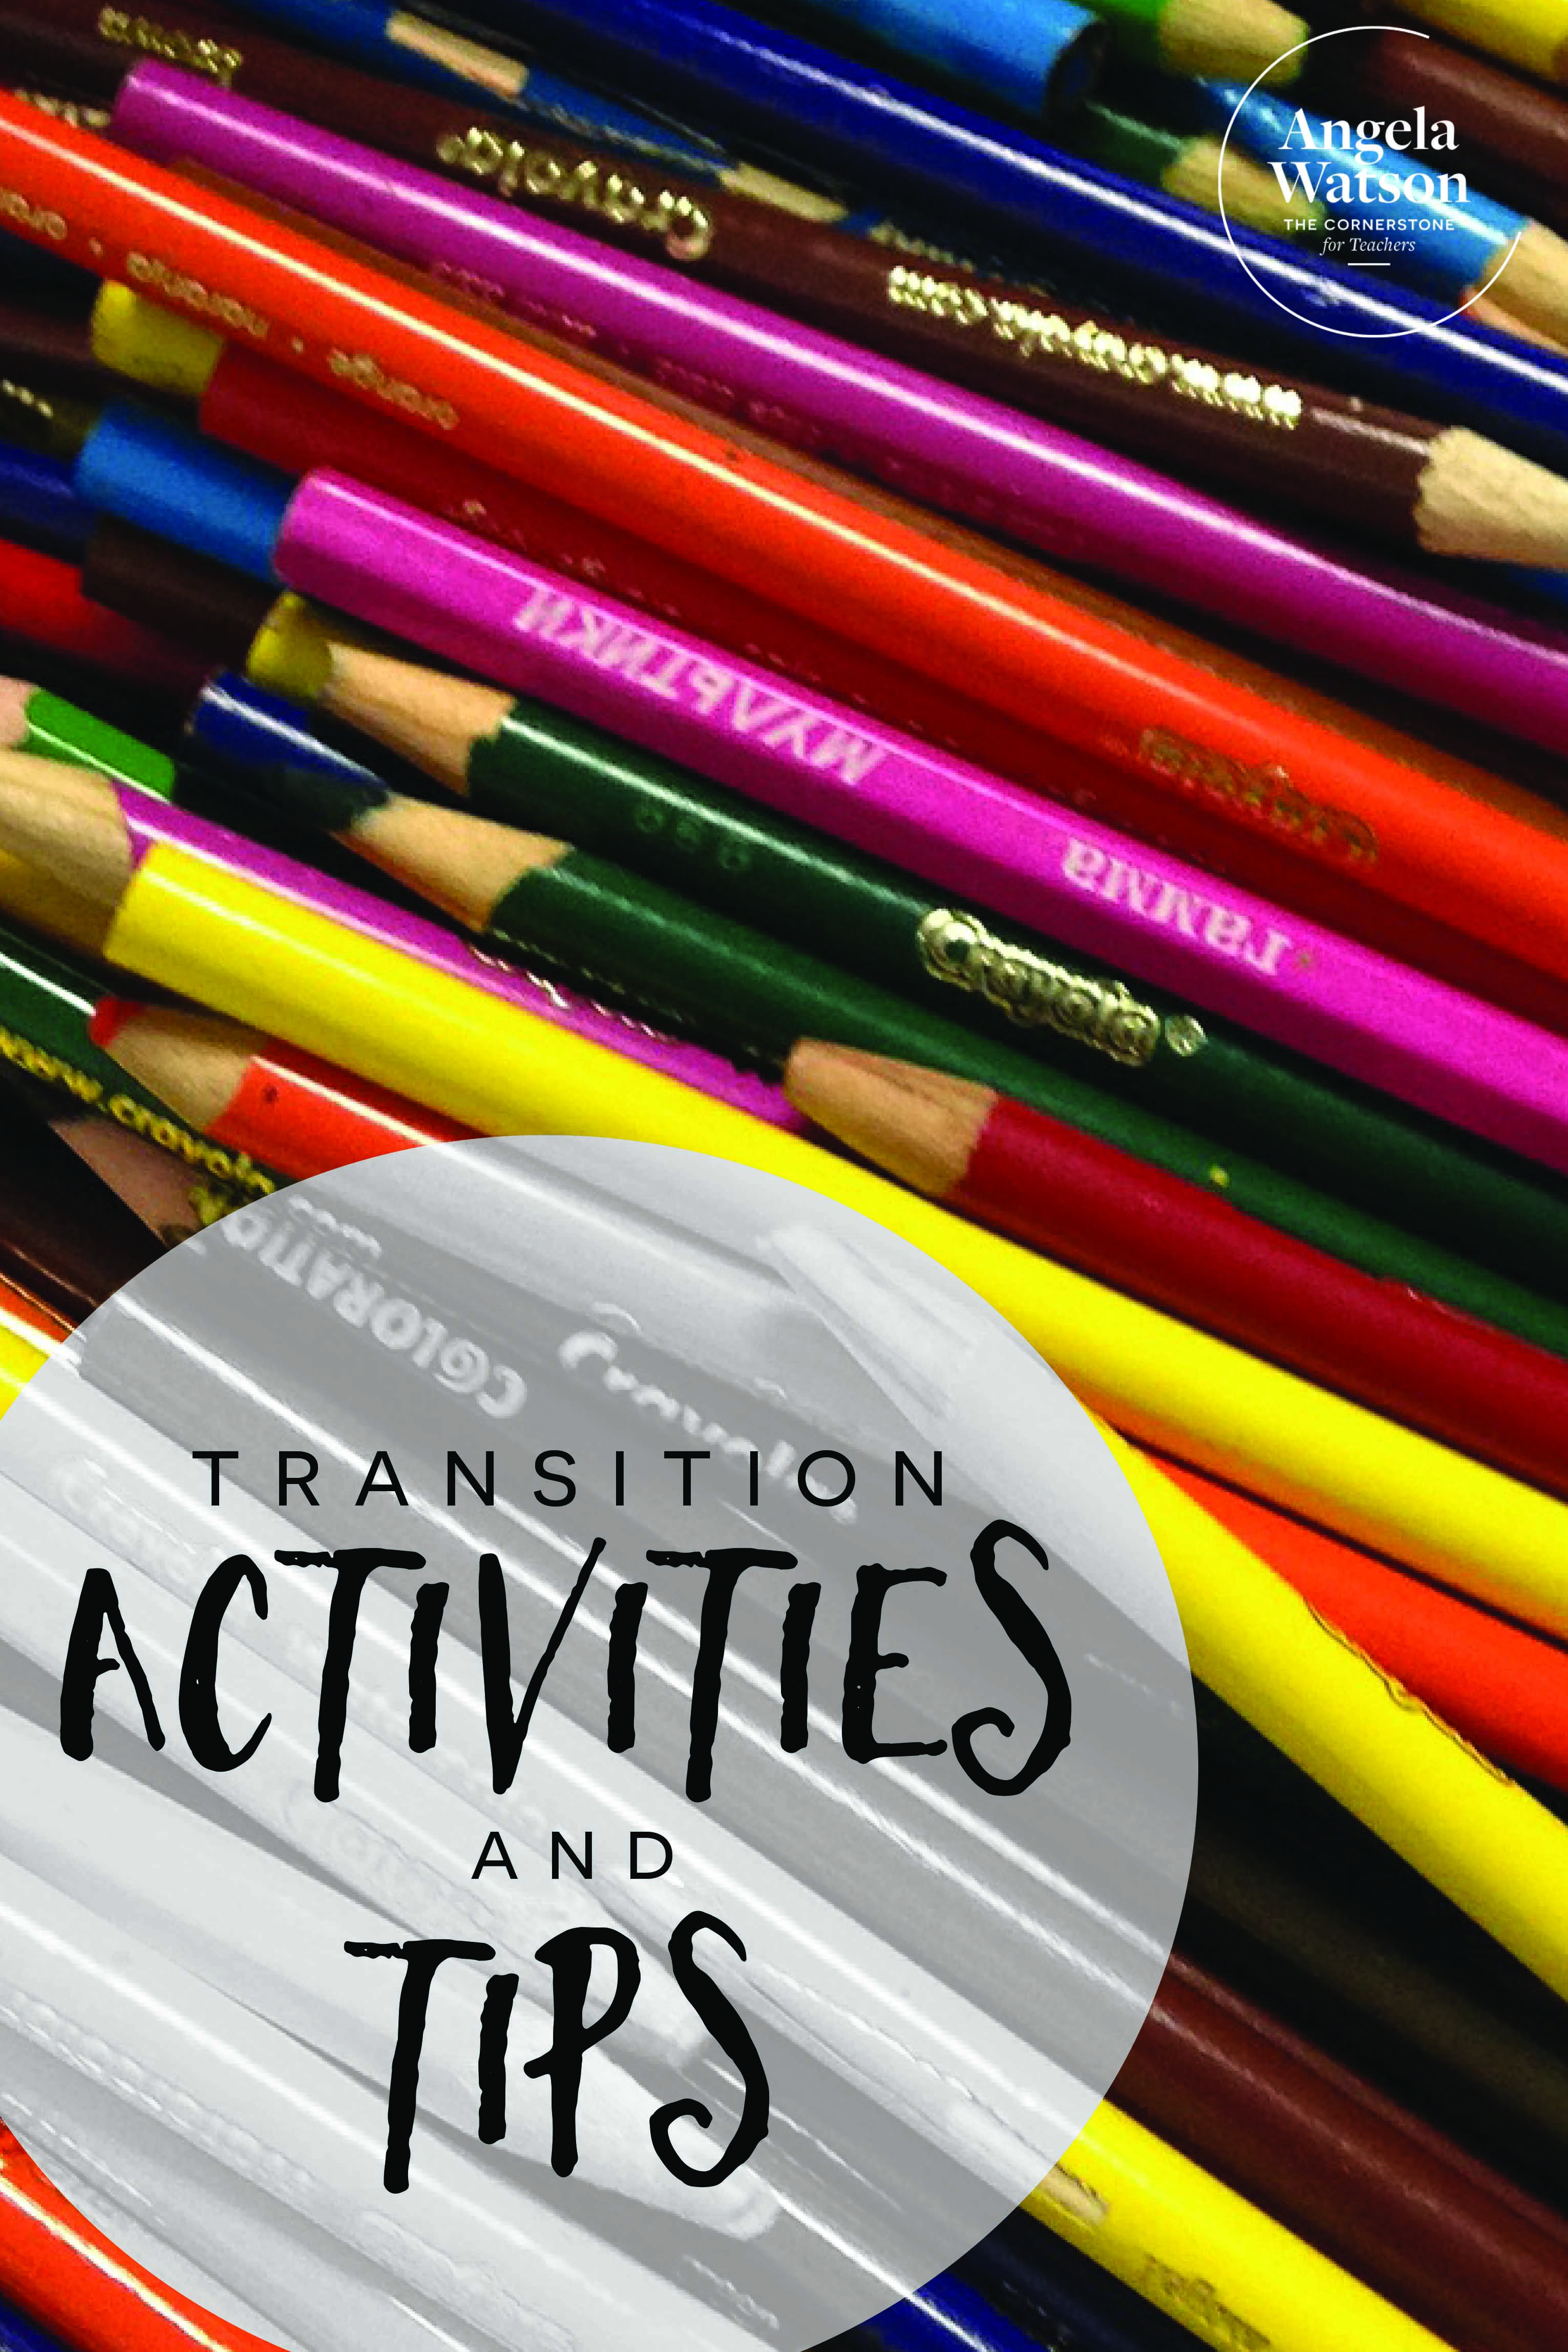 Transition Activities And Tips